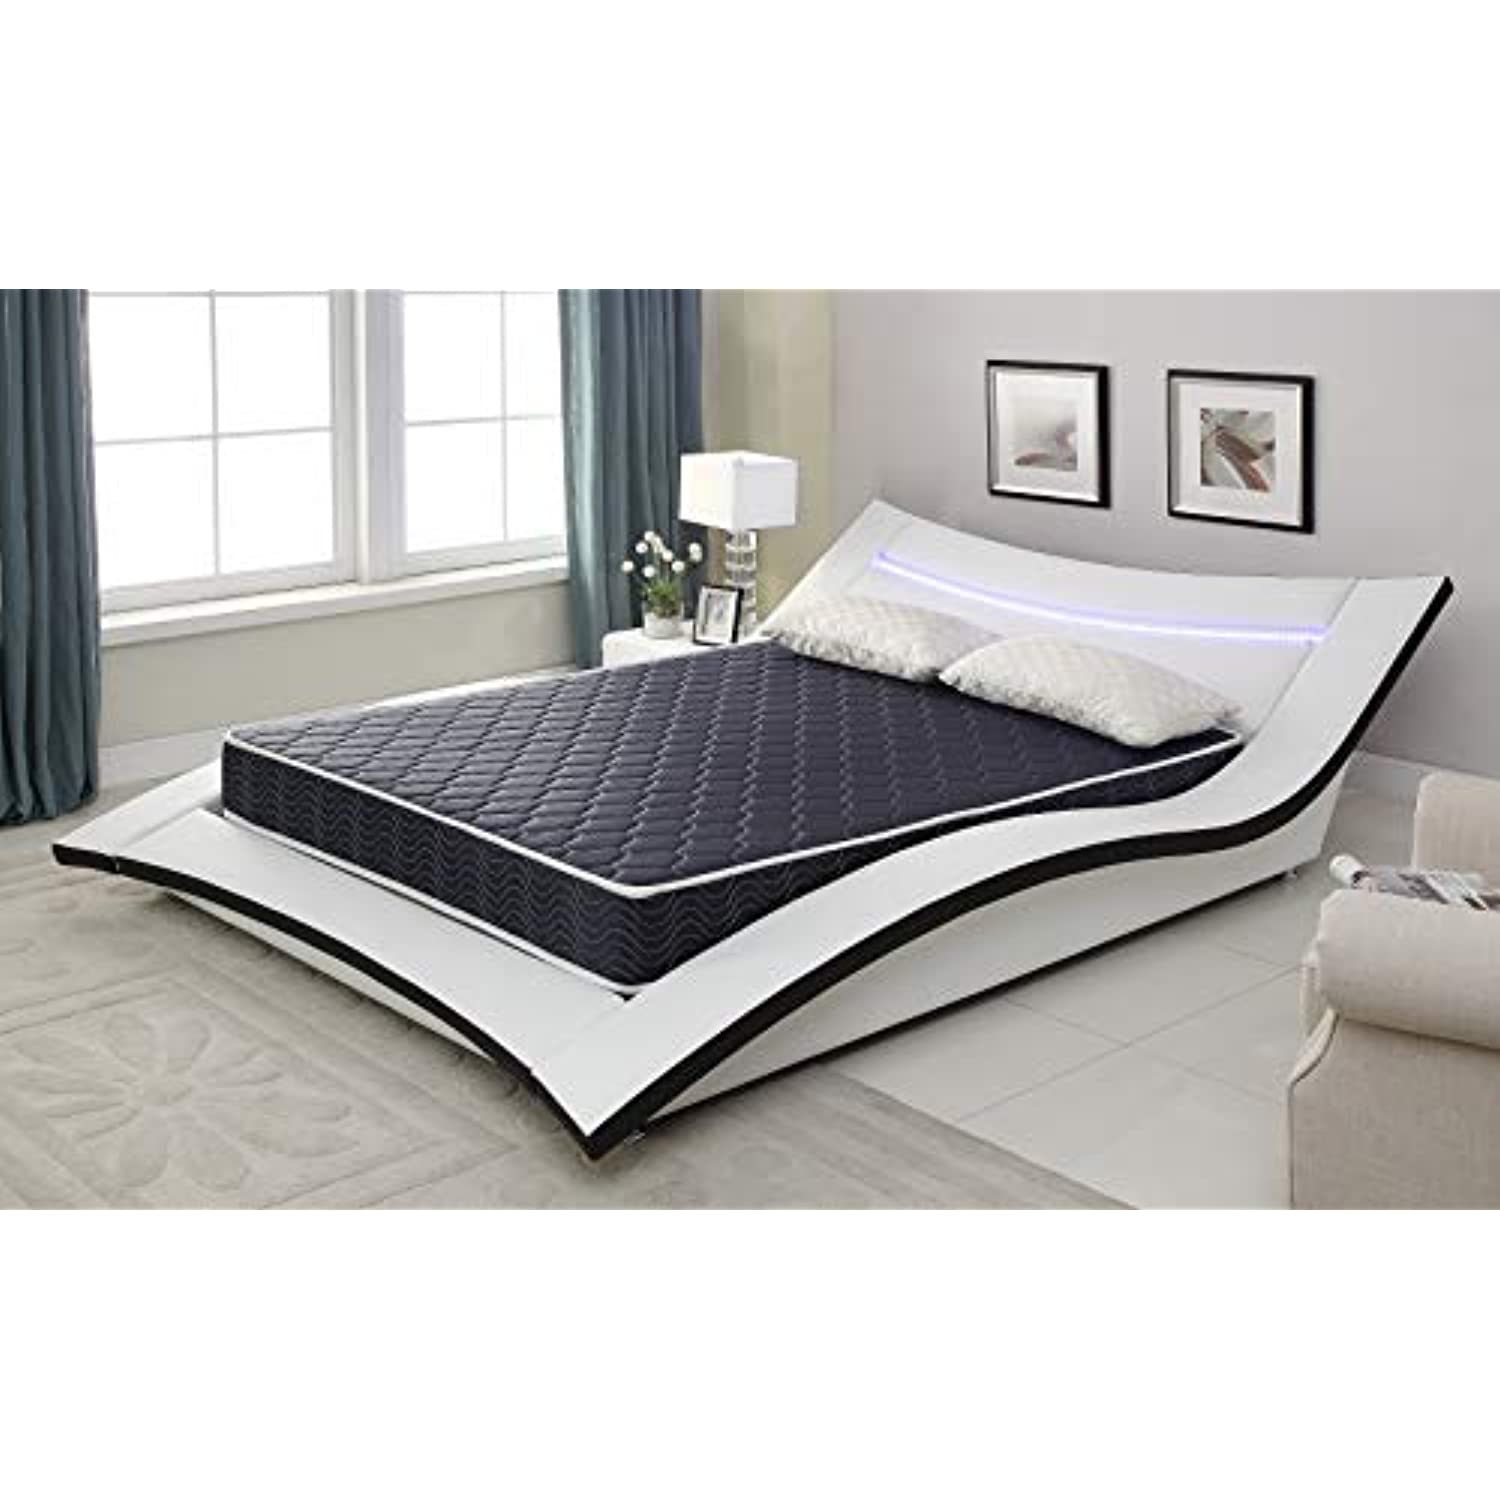 AC Pacific 4 Foam Mattress Covered in a Stylish Navy Blue Waterproof Fabric, Twin